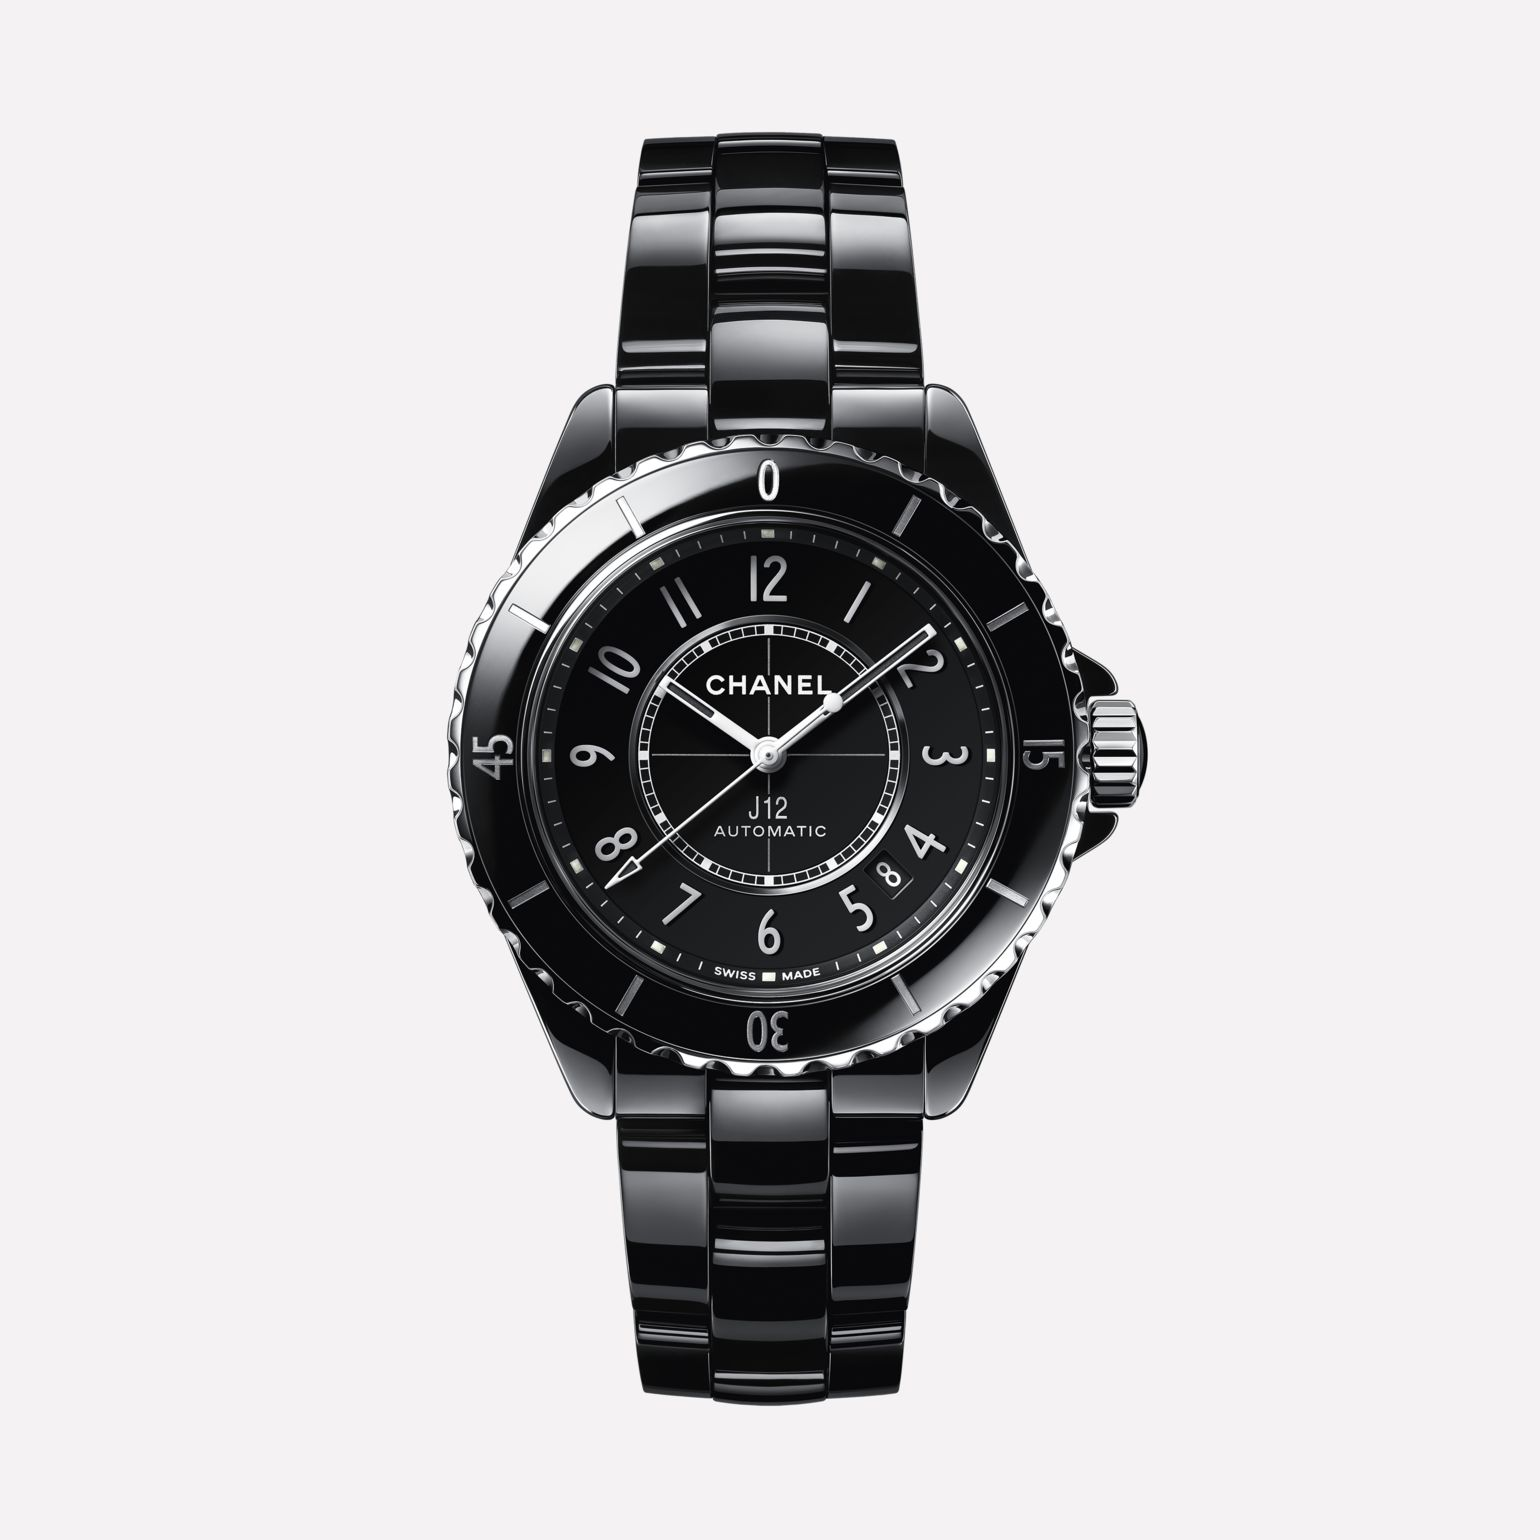 J12 Watch Caliber 12.1, 38 mm Black highly resistant ceramic and steel